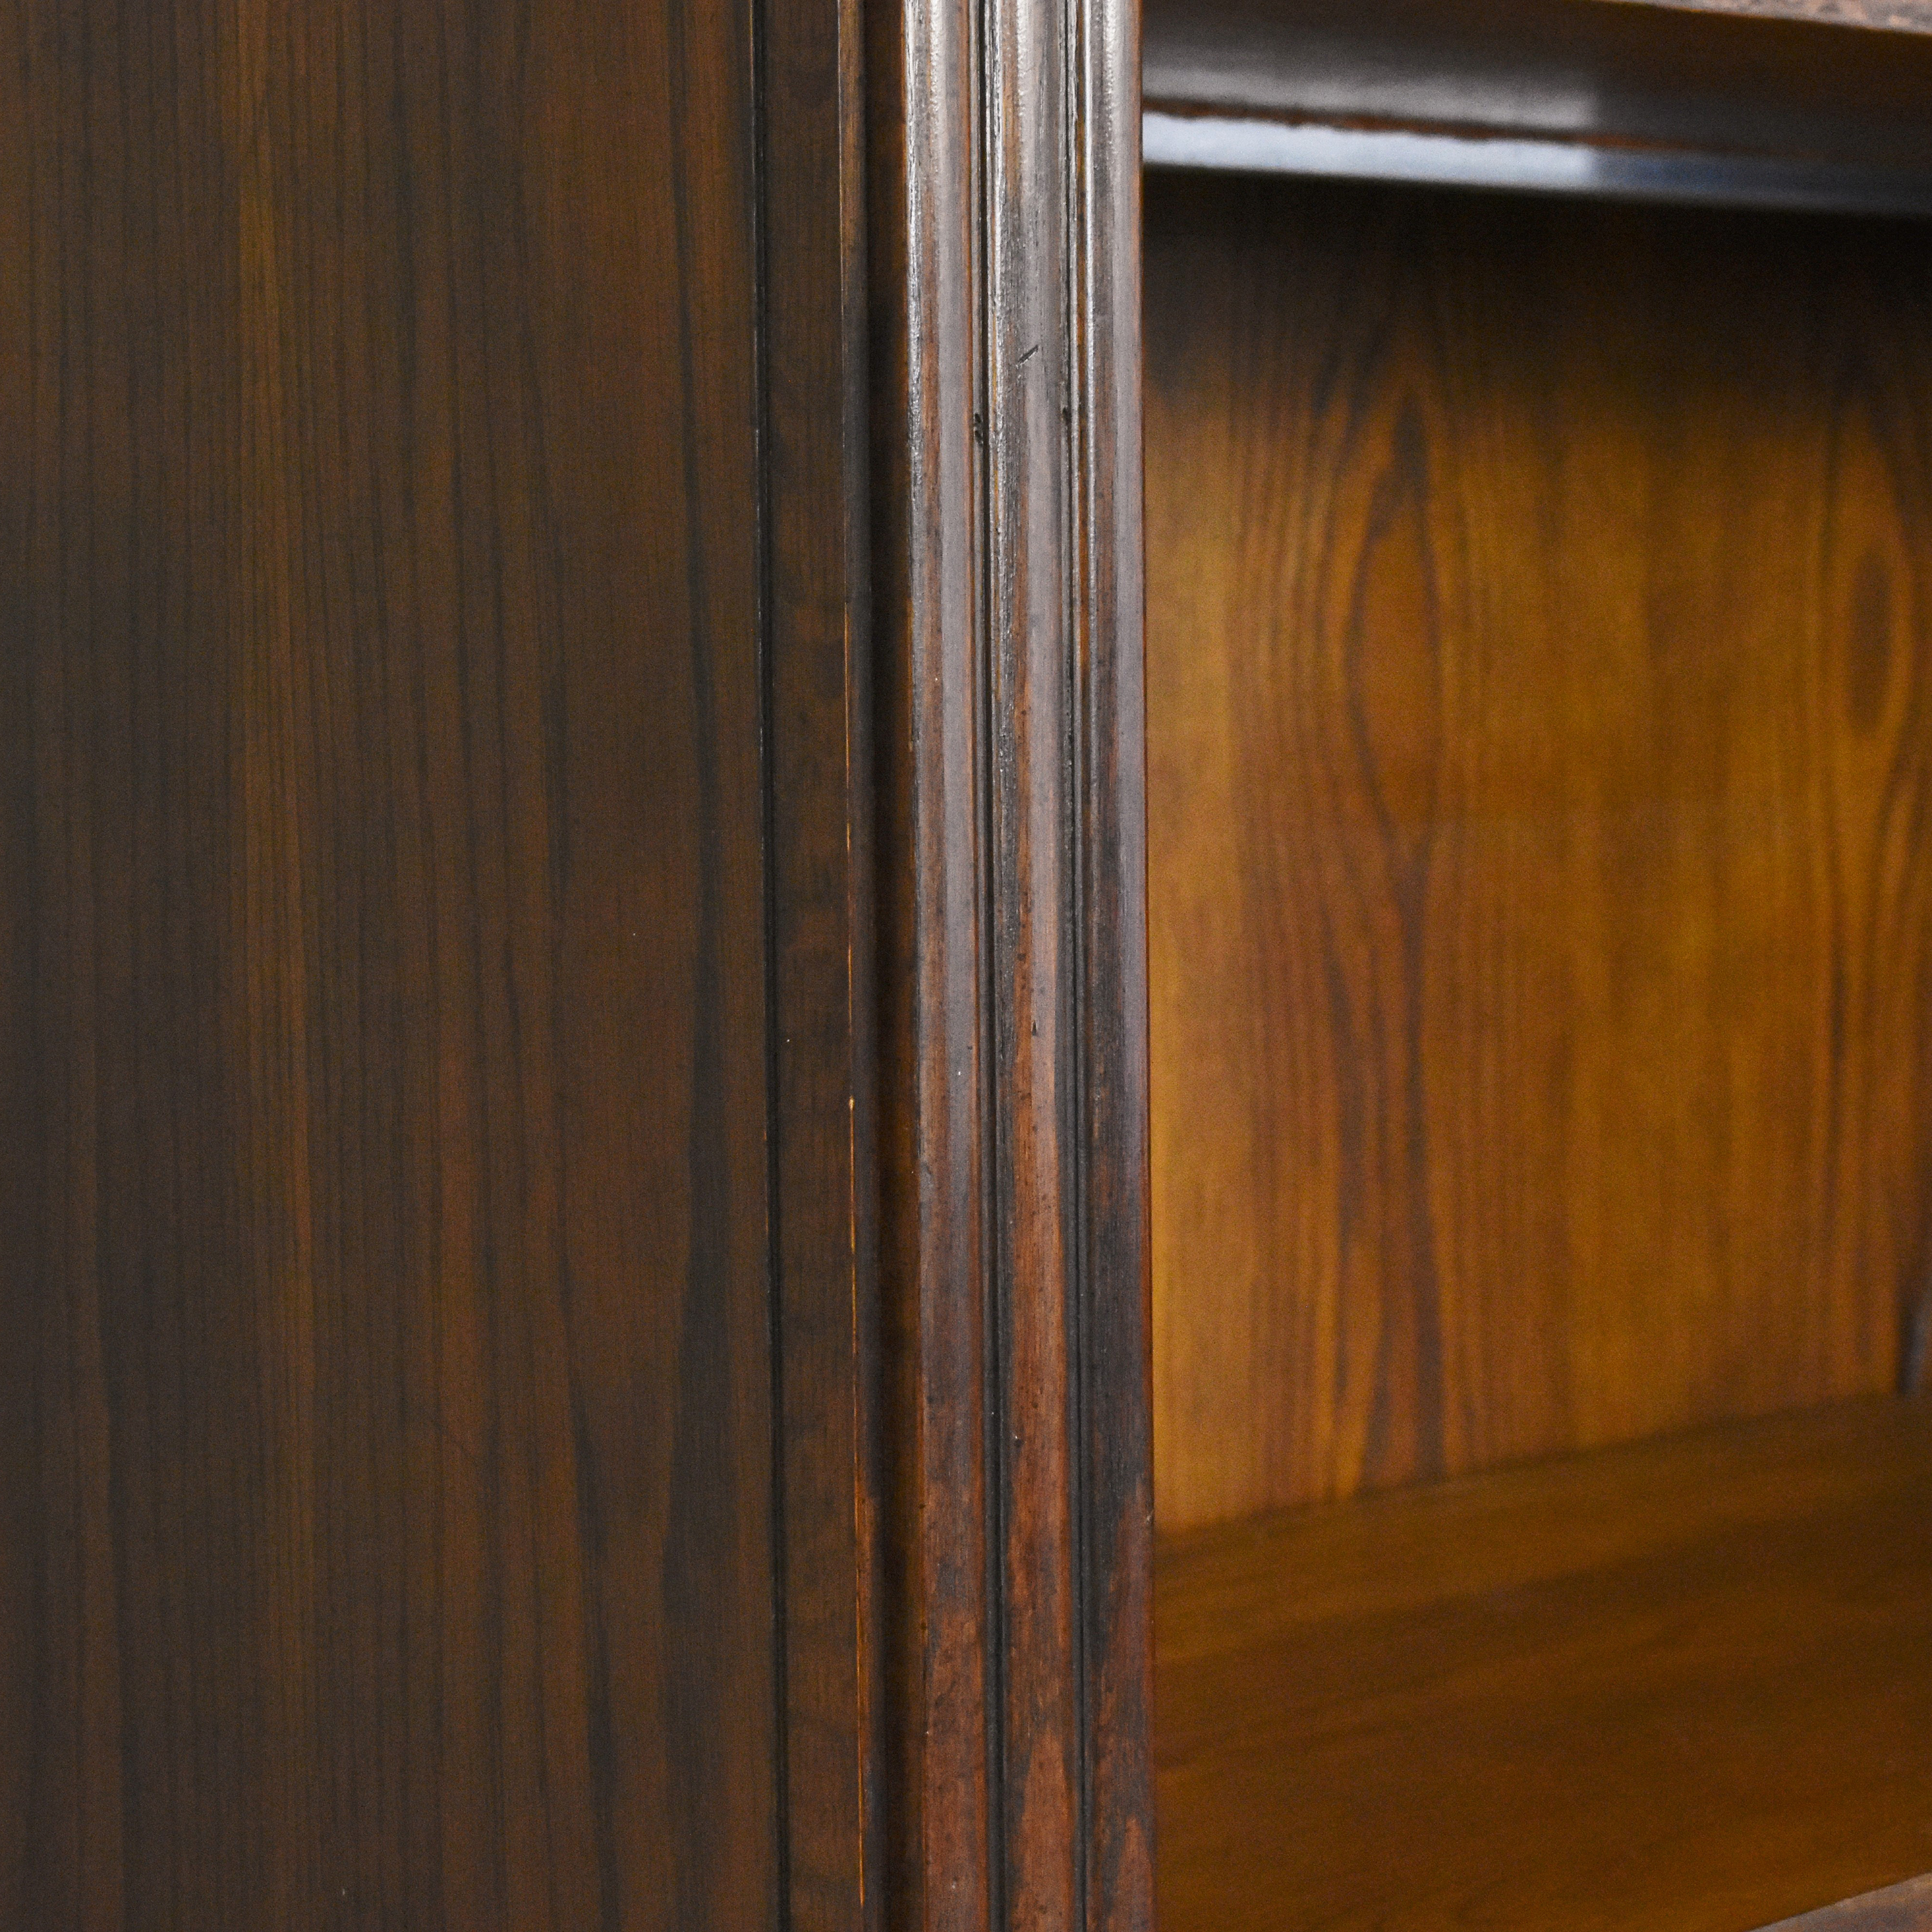 Thomasville Bookcase with Drawer / Bookcases & Shelving